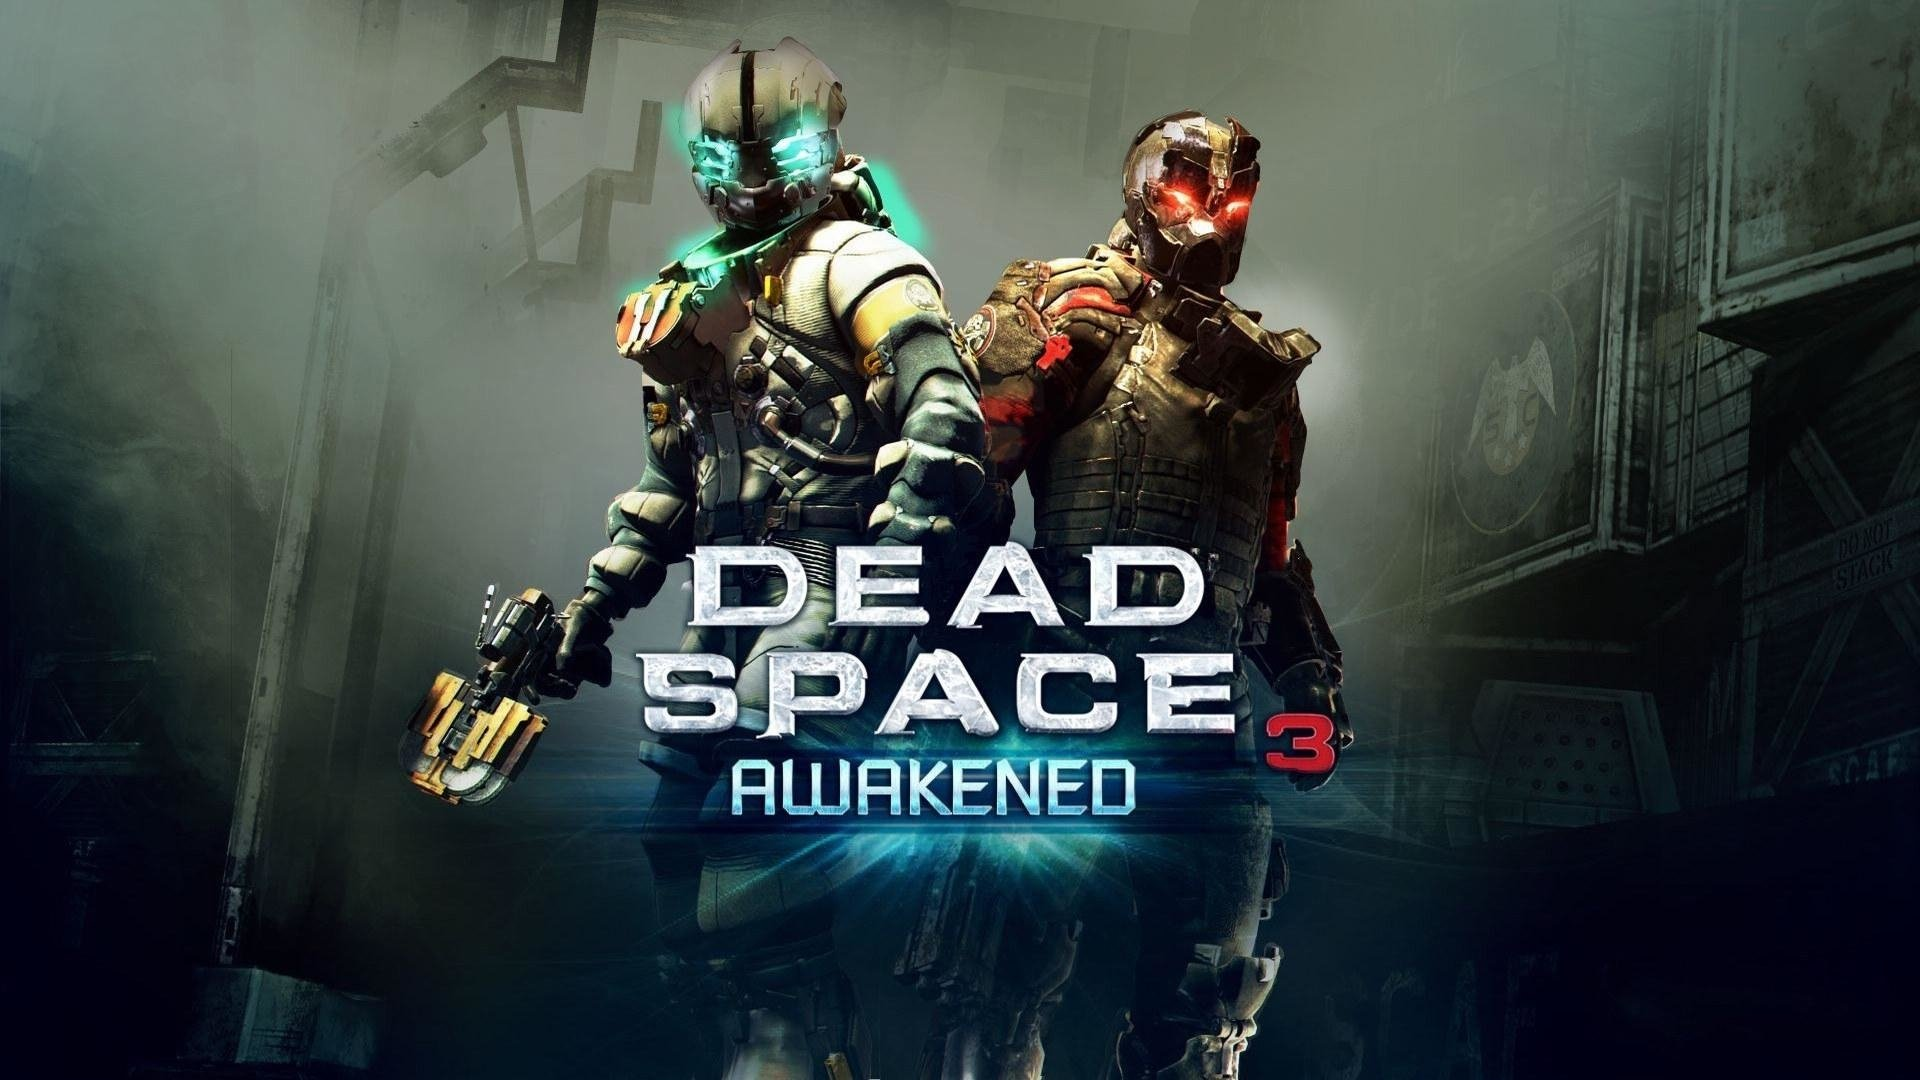 73 Dead Space 3 HD Wallpapers | Backgrounds - Wallpaper Abyss